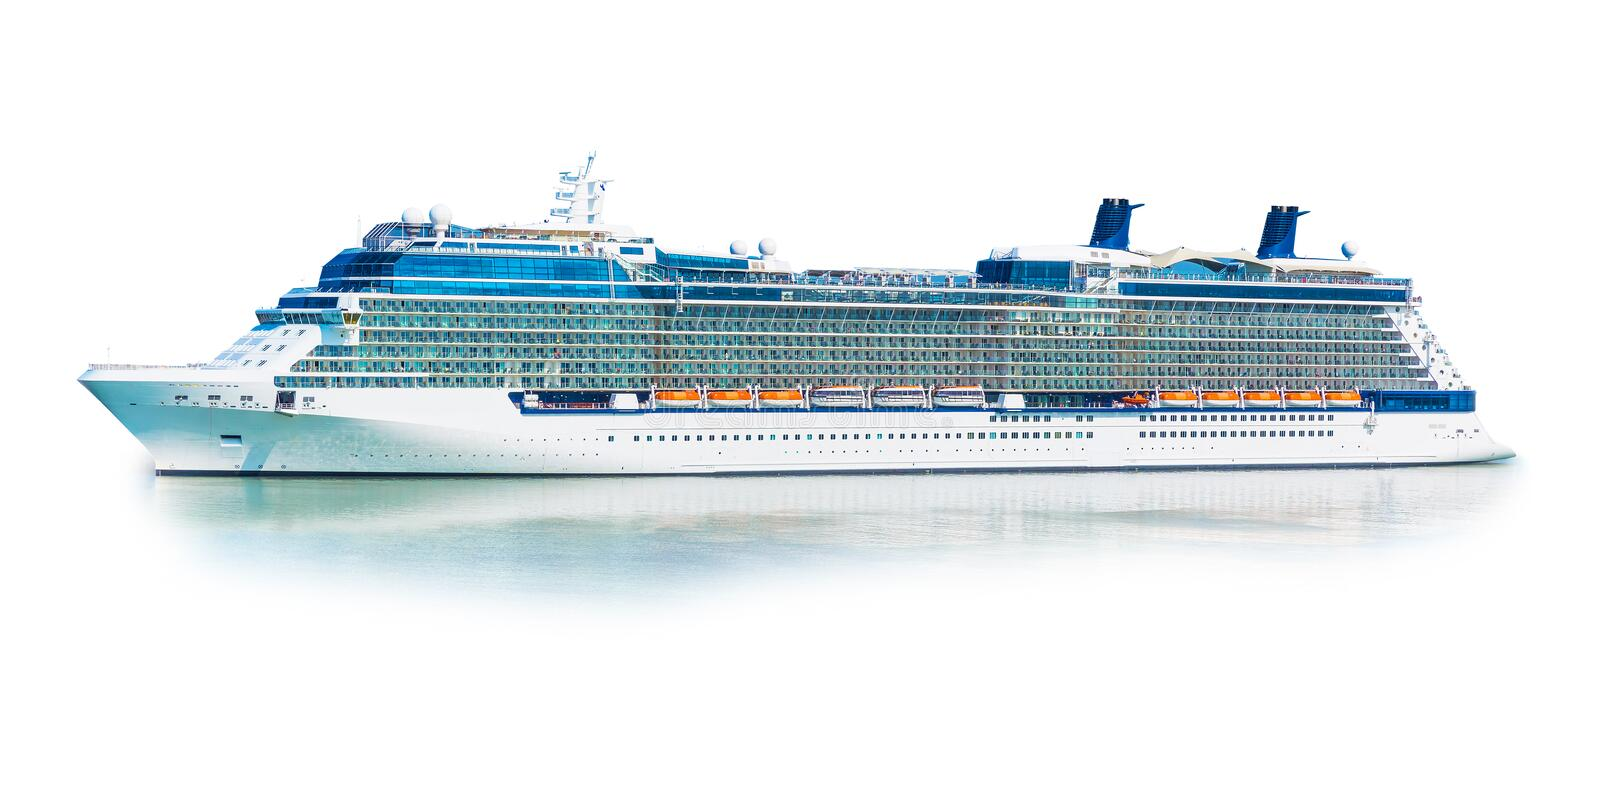 Big cruise ship liner ferry isolated on white background royalty free stock photo